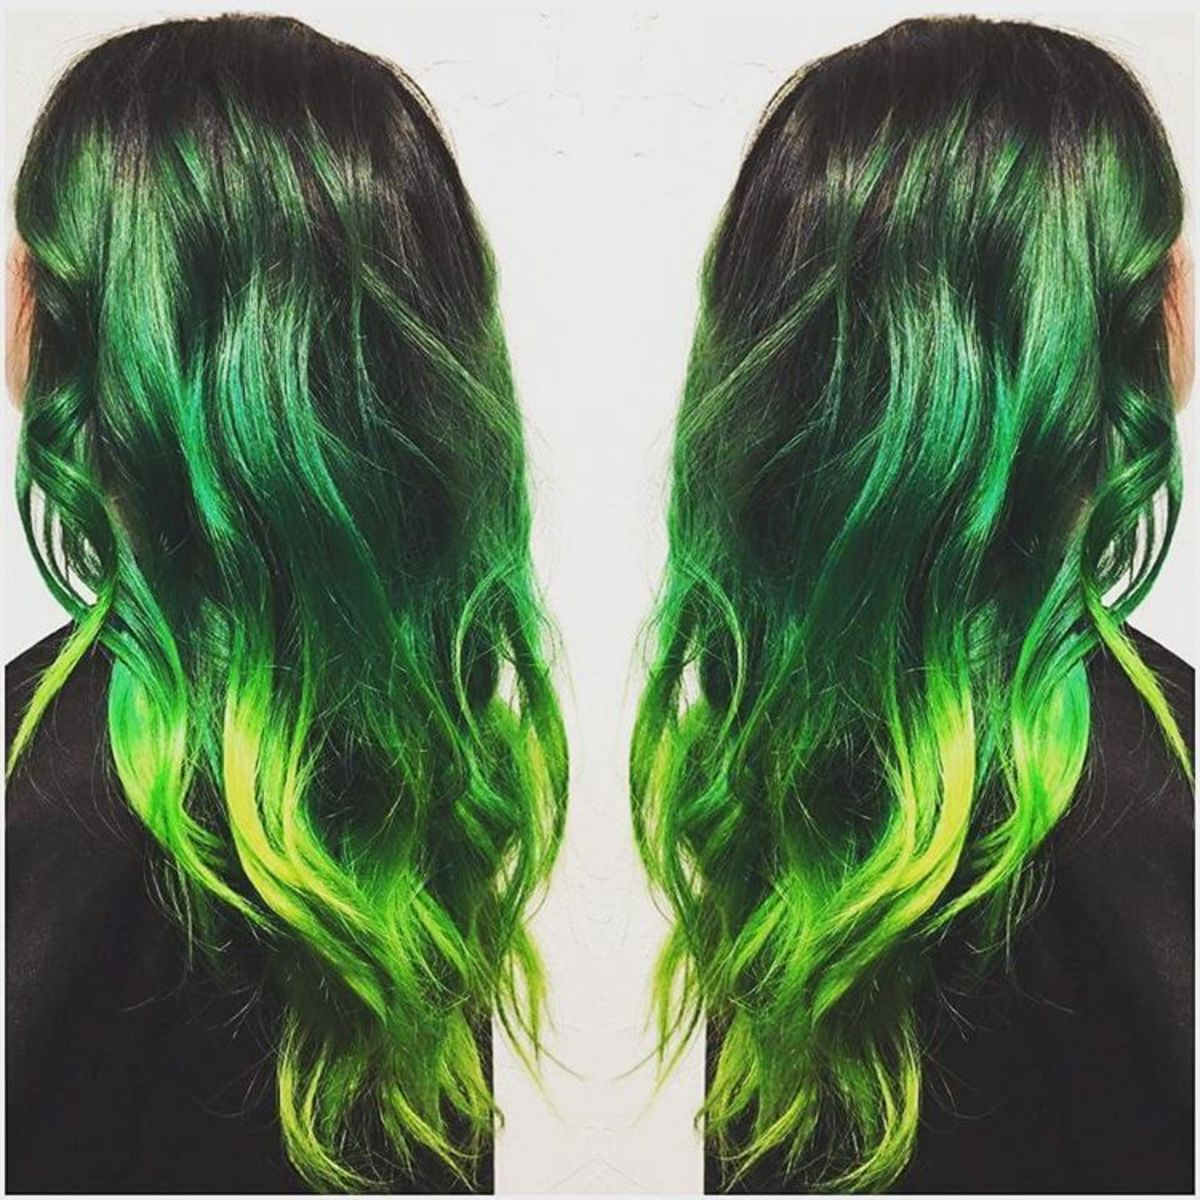 Hair Diy 5 Ideas For Green Hair And How To Do Them At Home Bellatory